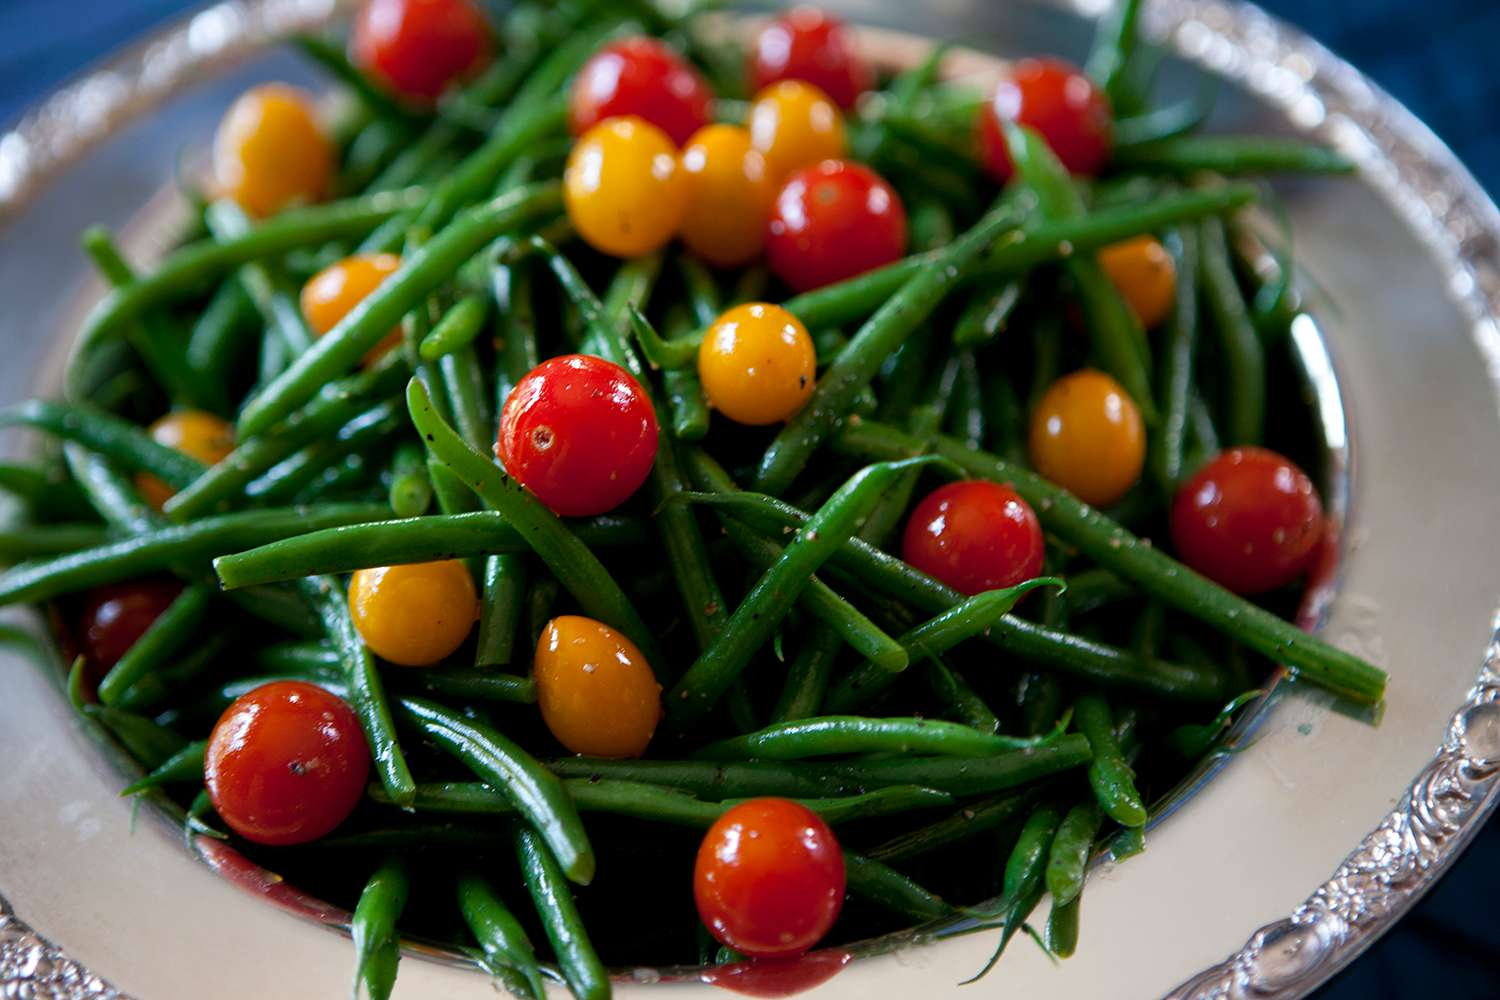 Close up of green beans and tomatoes